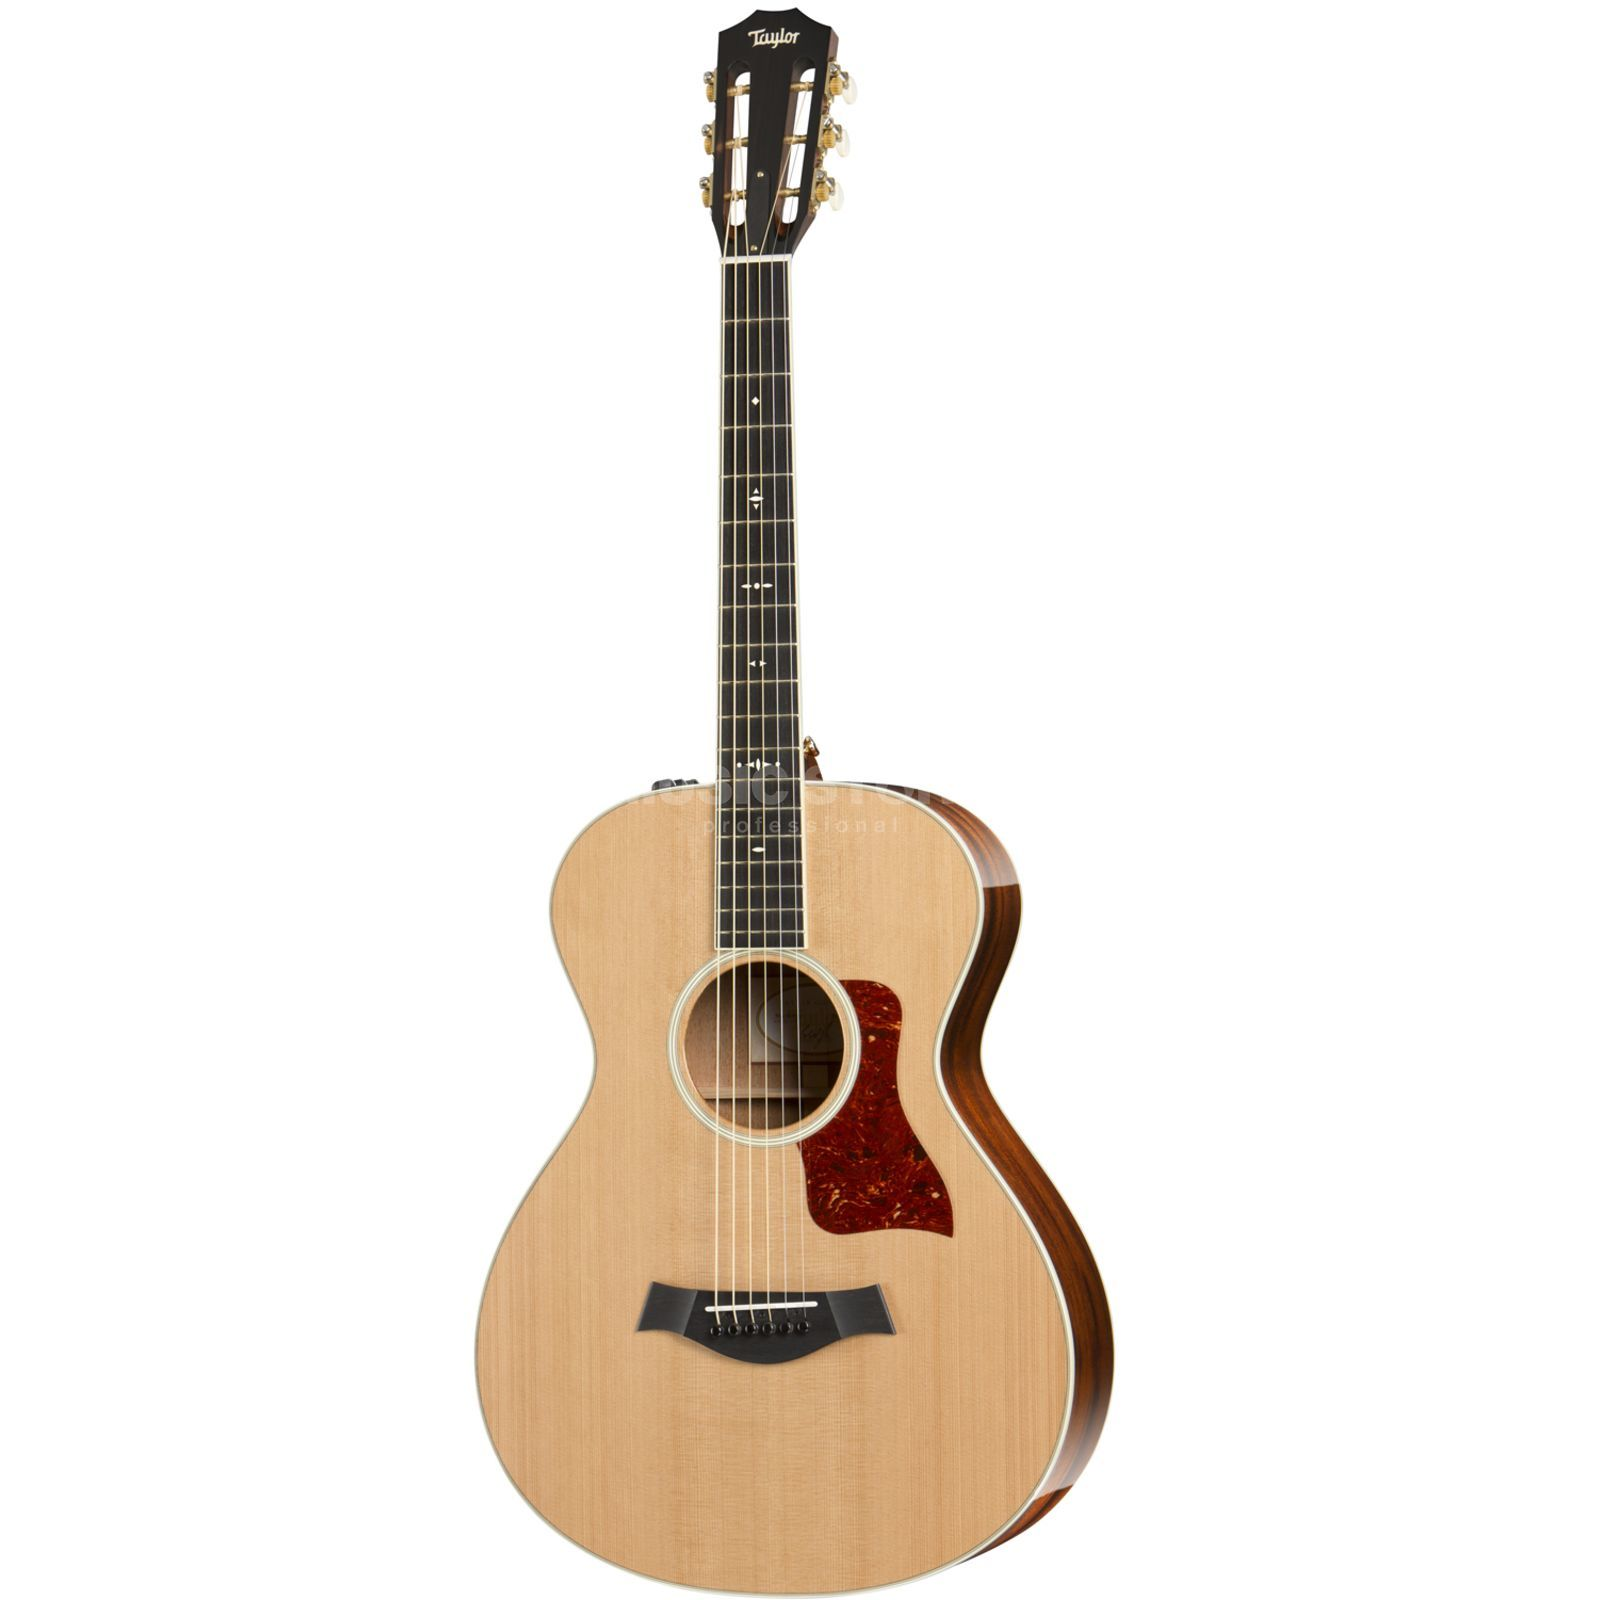 Taylor 512e 12th fret Grand Concert Natural Produktbild